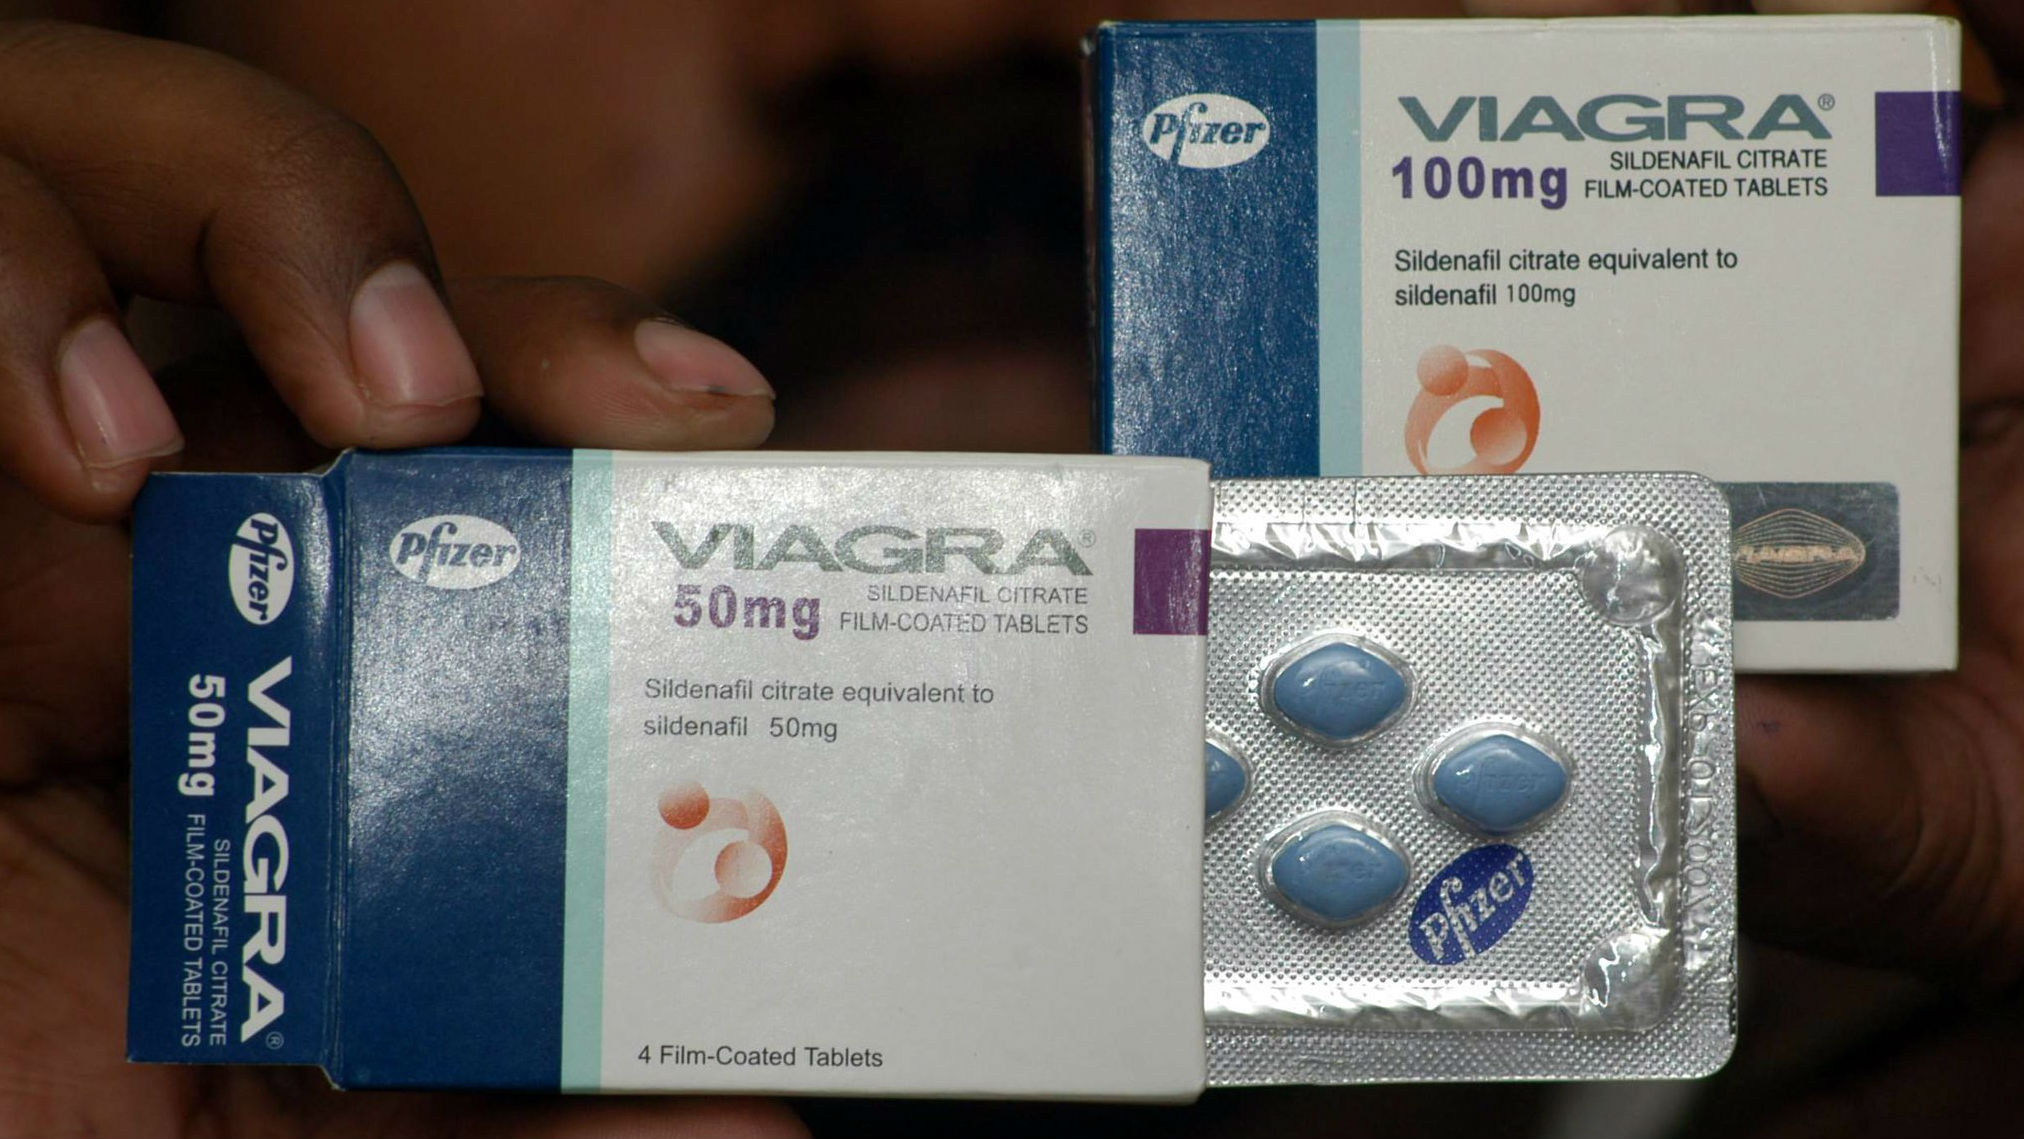 "A photograph released on Tuesday 08 February 2005 shows anti-impotency drug Viagra in Multan. Pakistan's Drug Appellate Board has allowed the sale of Viagra in the country and asked the concerned authorities to consider its registration along with 15 other contenders. Seven years ago, the authorities had ruled that Viagra sales were ""not in public interest"". The new push has come from the Drug Appellate Board at its meeting here Jan 27, 2005 chaired by Health Secretary Anwar Mehmood. Pfizer Laboratories, Karachi, the Pakistani arm of the US pharmaceutical major, had applied in 1998 for registering Viagra and the issue was referred to a comm? (caption cuts off)"